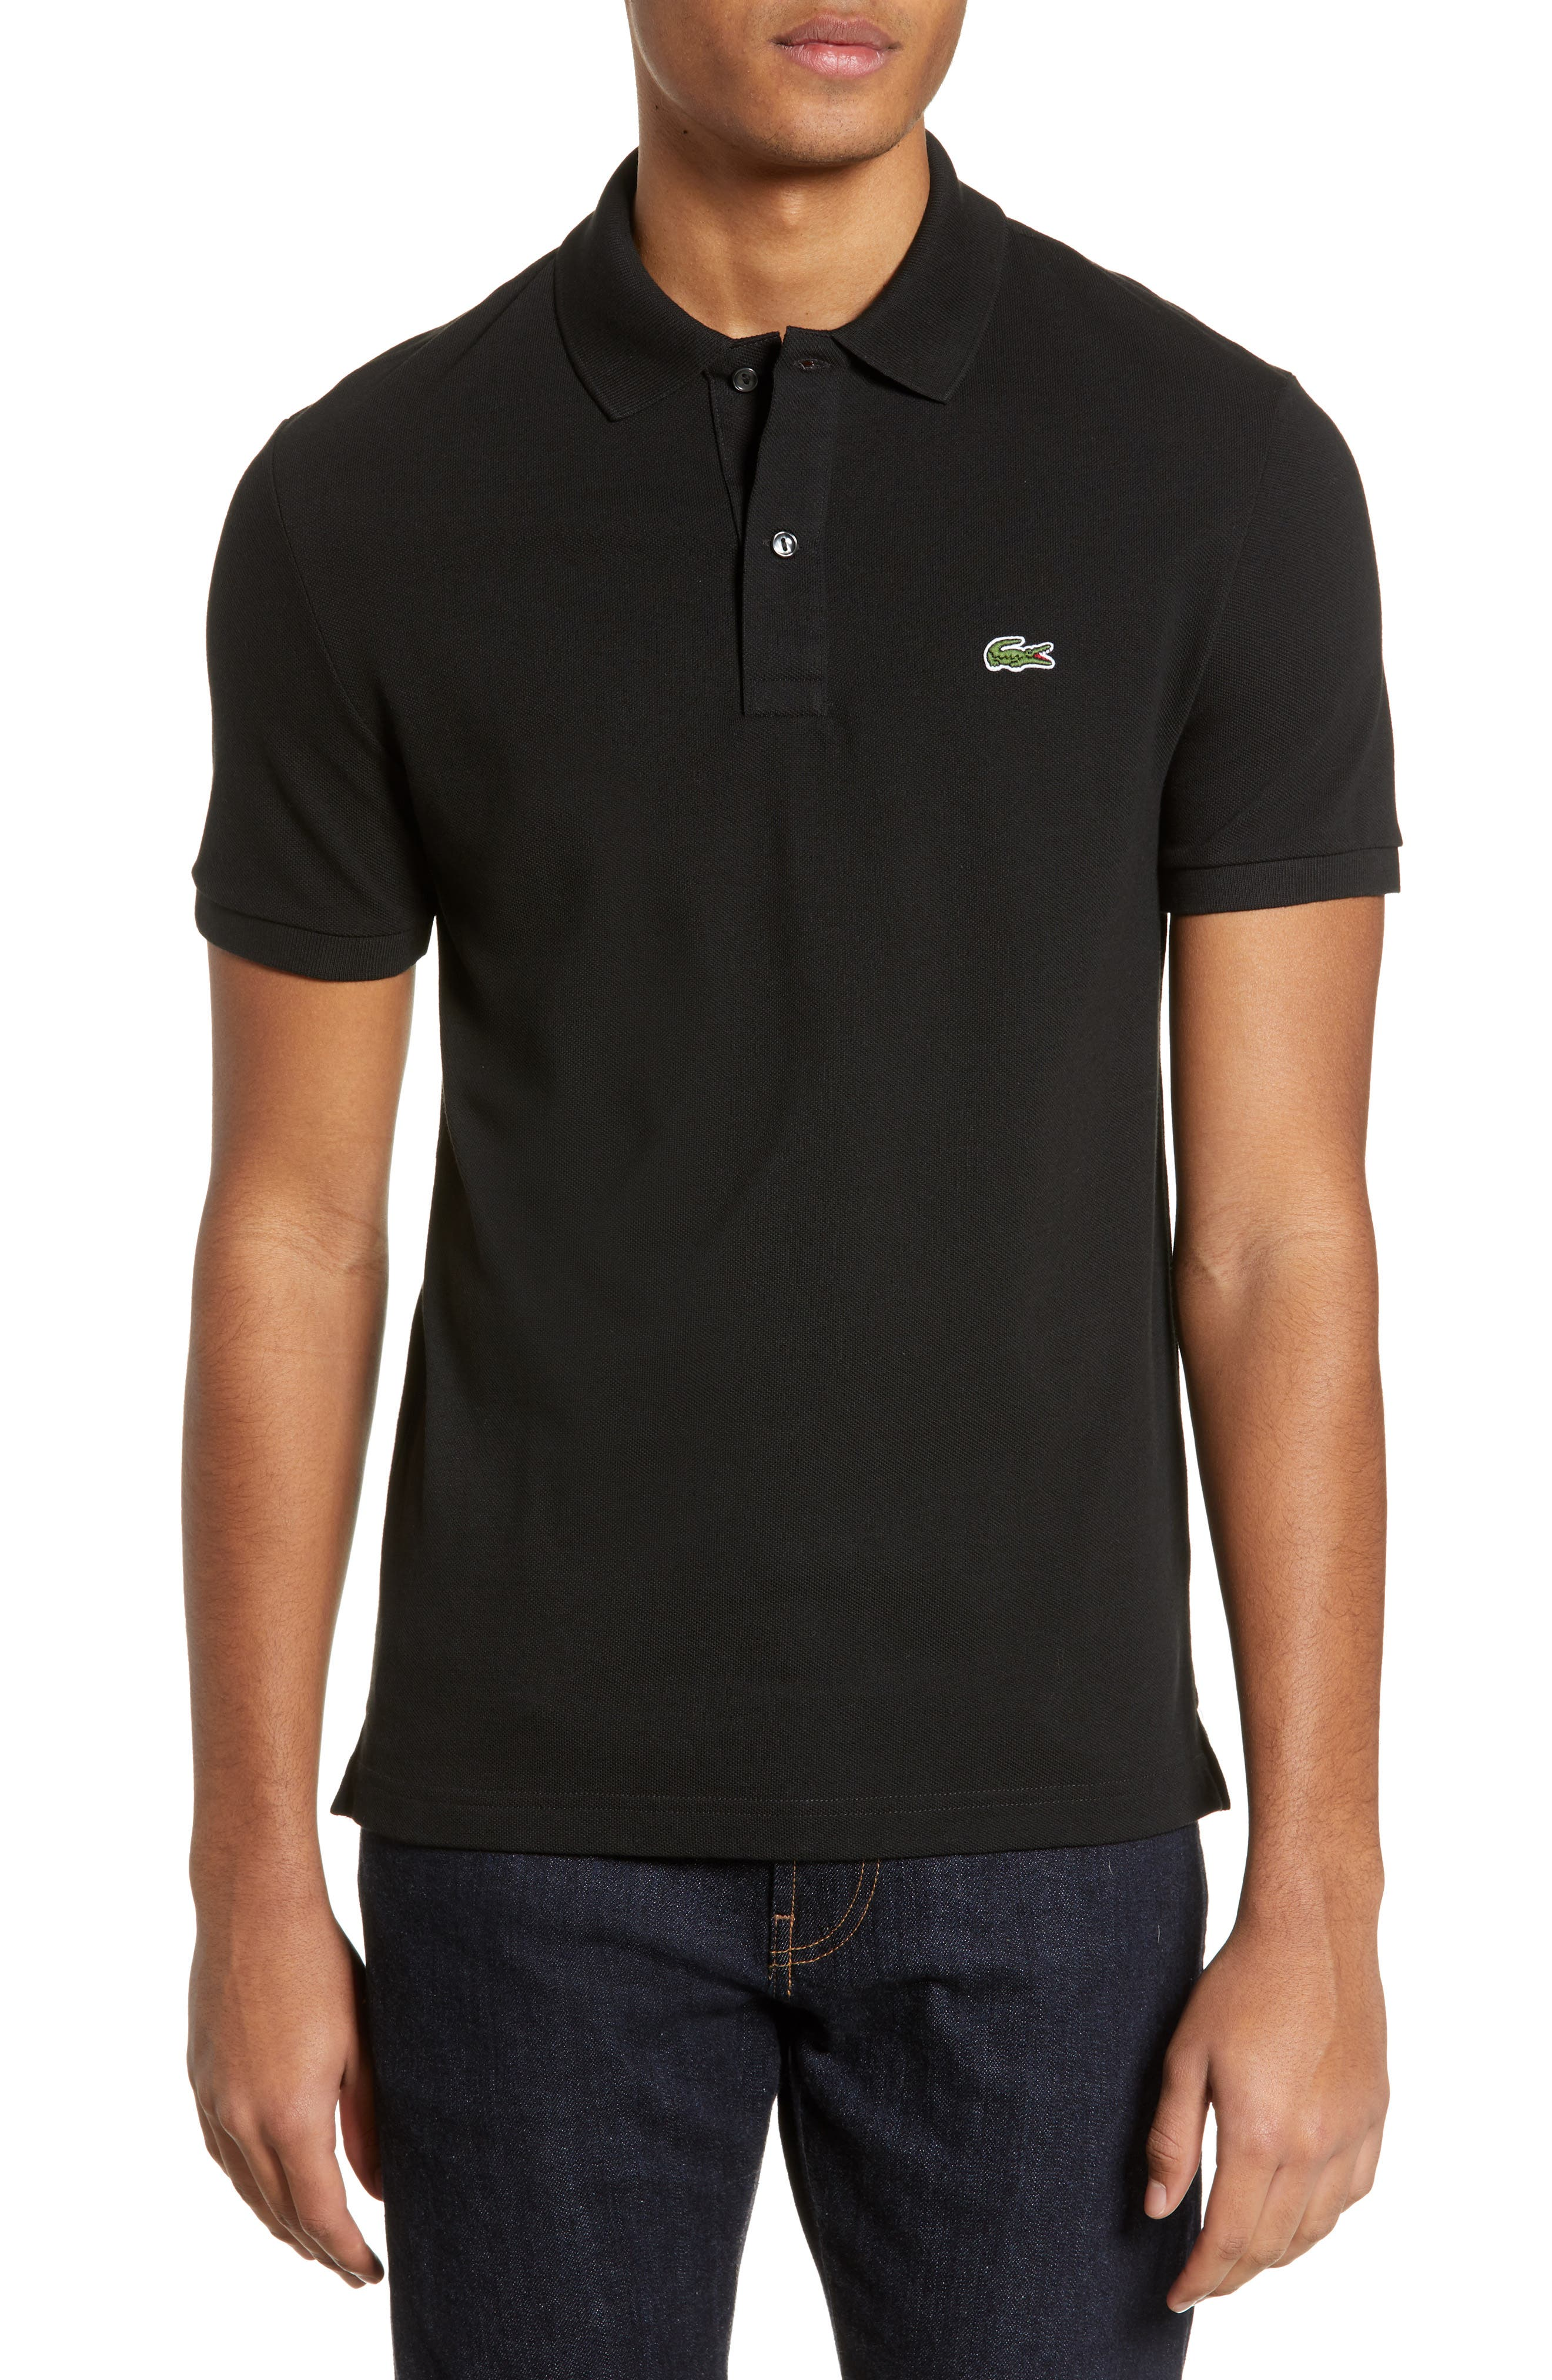 LACOSTE, Slim Fit Piqué Polo, Main thumbnail 1, color, BLACK